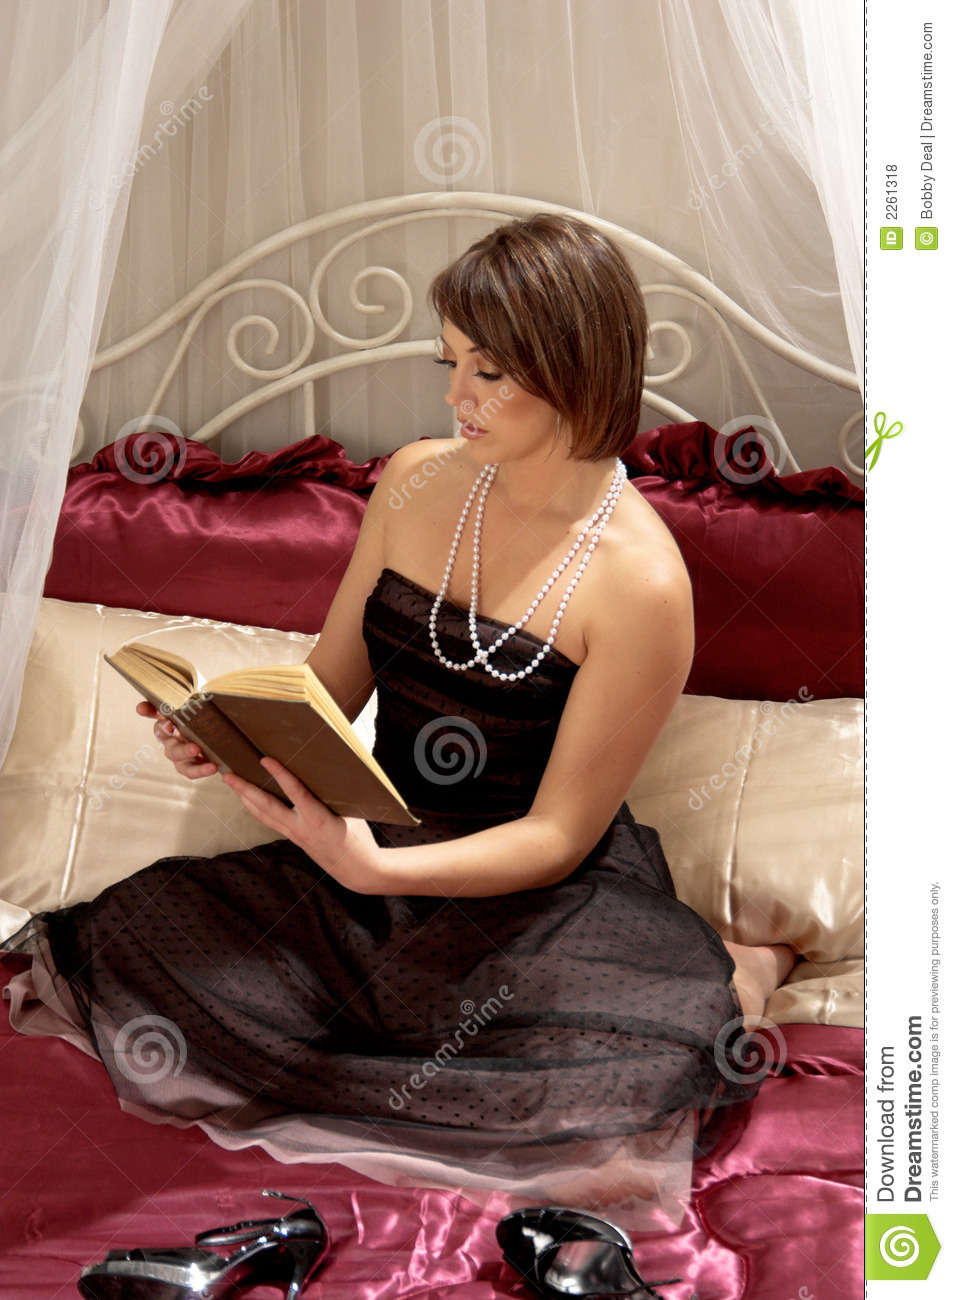 Woman Reading Book On Bed Stock Photo Image Of Gown Pearls 2261318